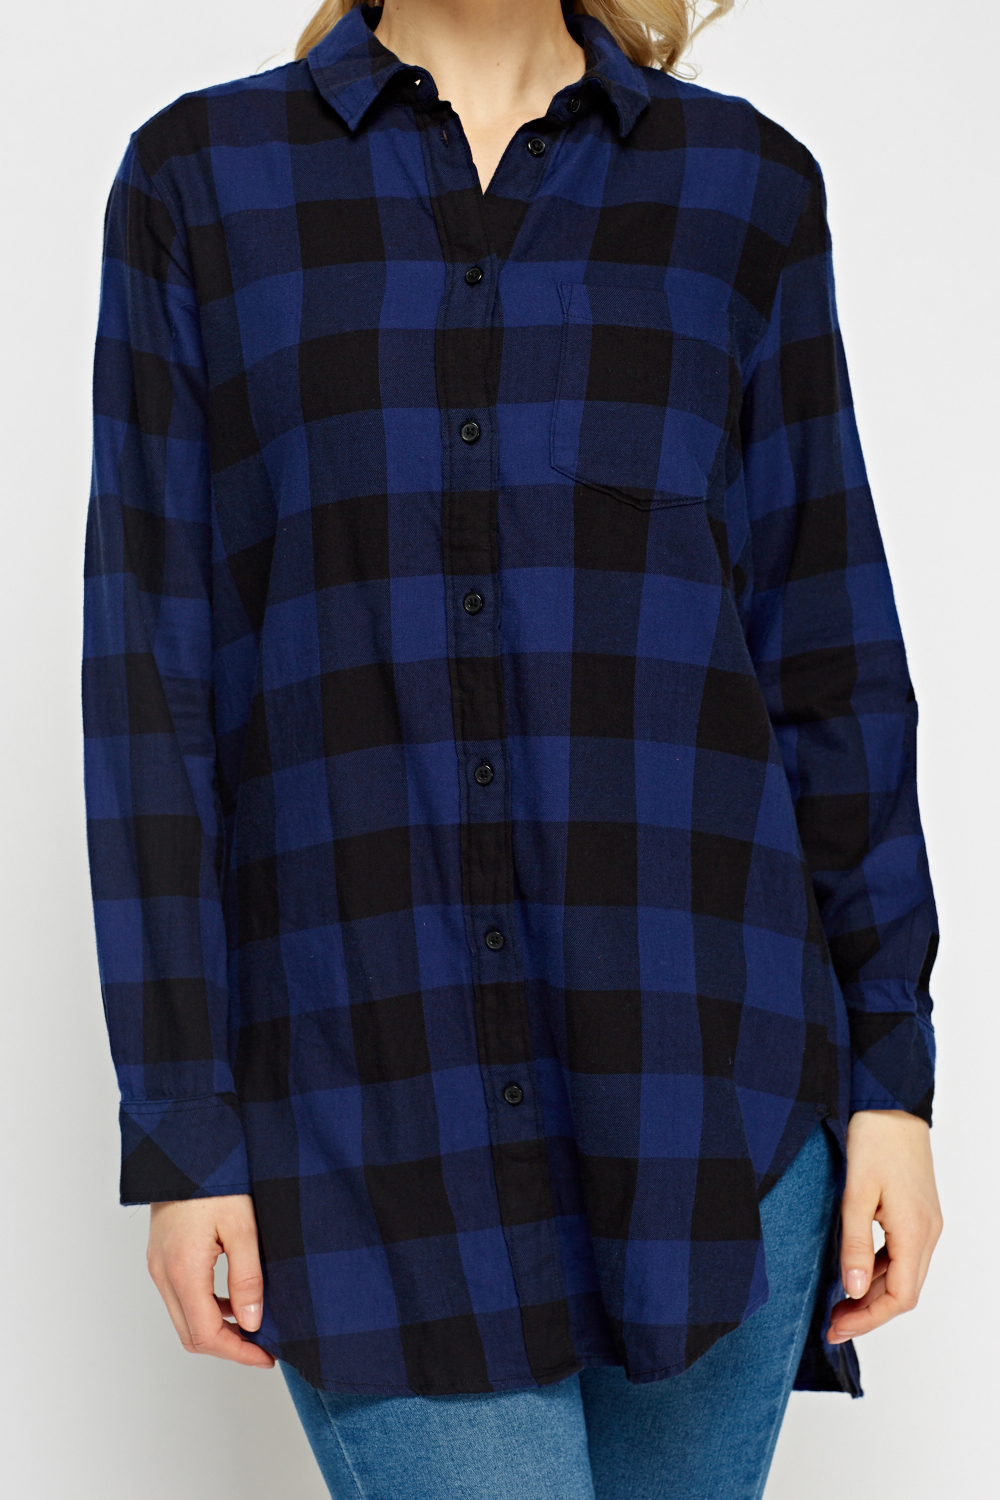 Enjoy free shipping and easy returns every day at Kohl's. Find great deals on Mens Blue Plaid Button-Down Shirts Tops at Kohl's today!